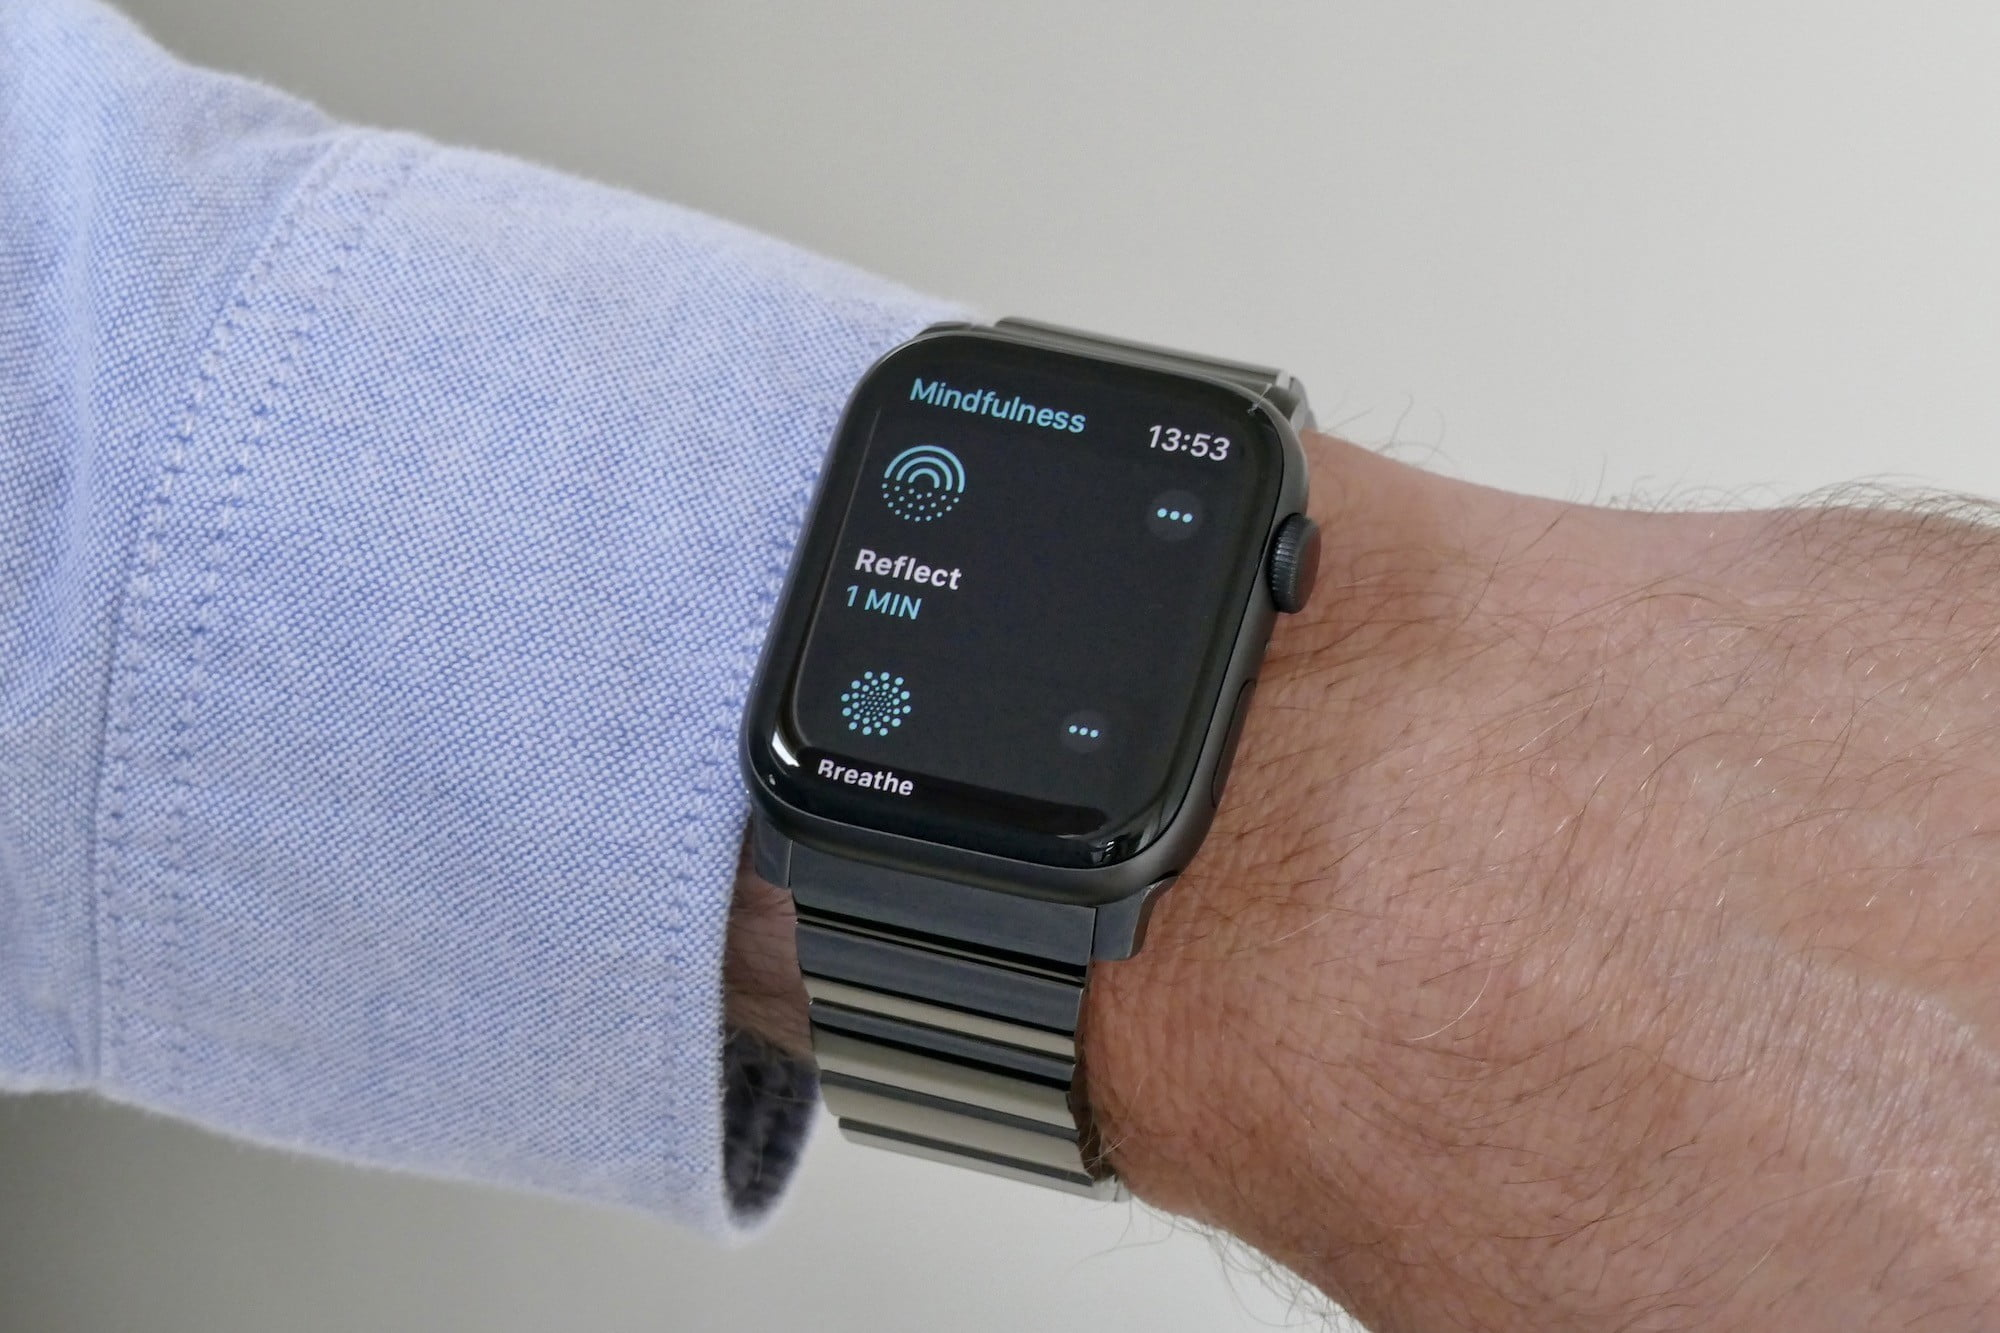 The Mindfulness app in WatchOS 8.